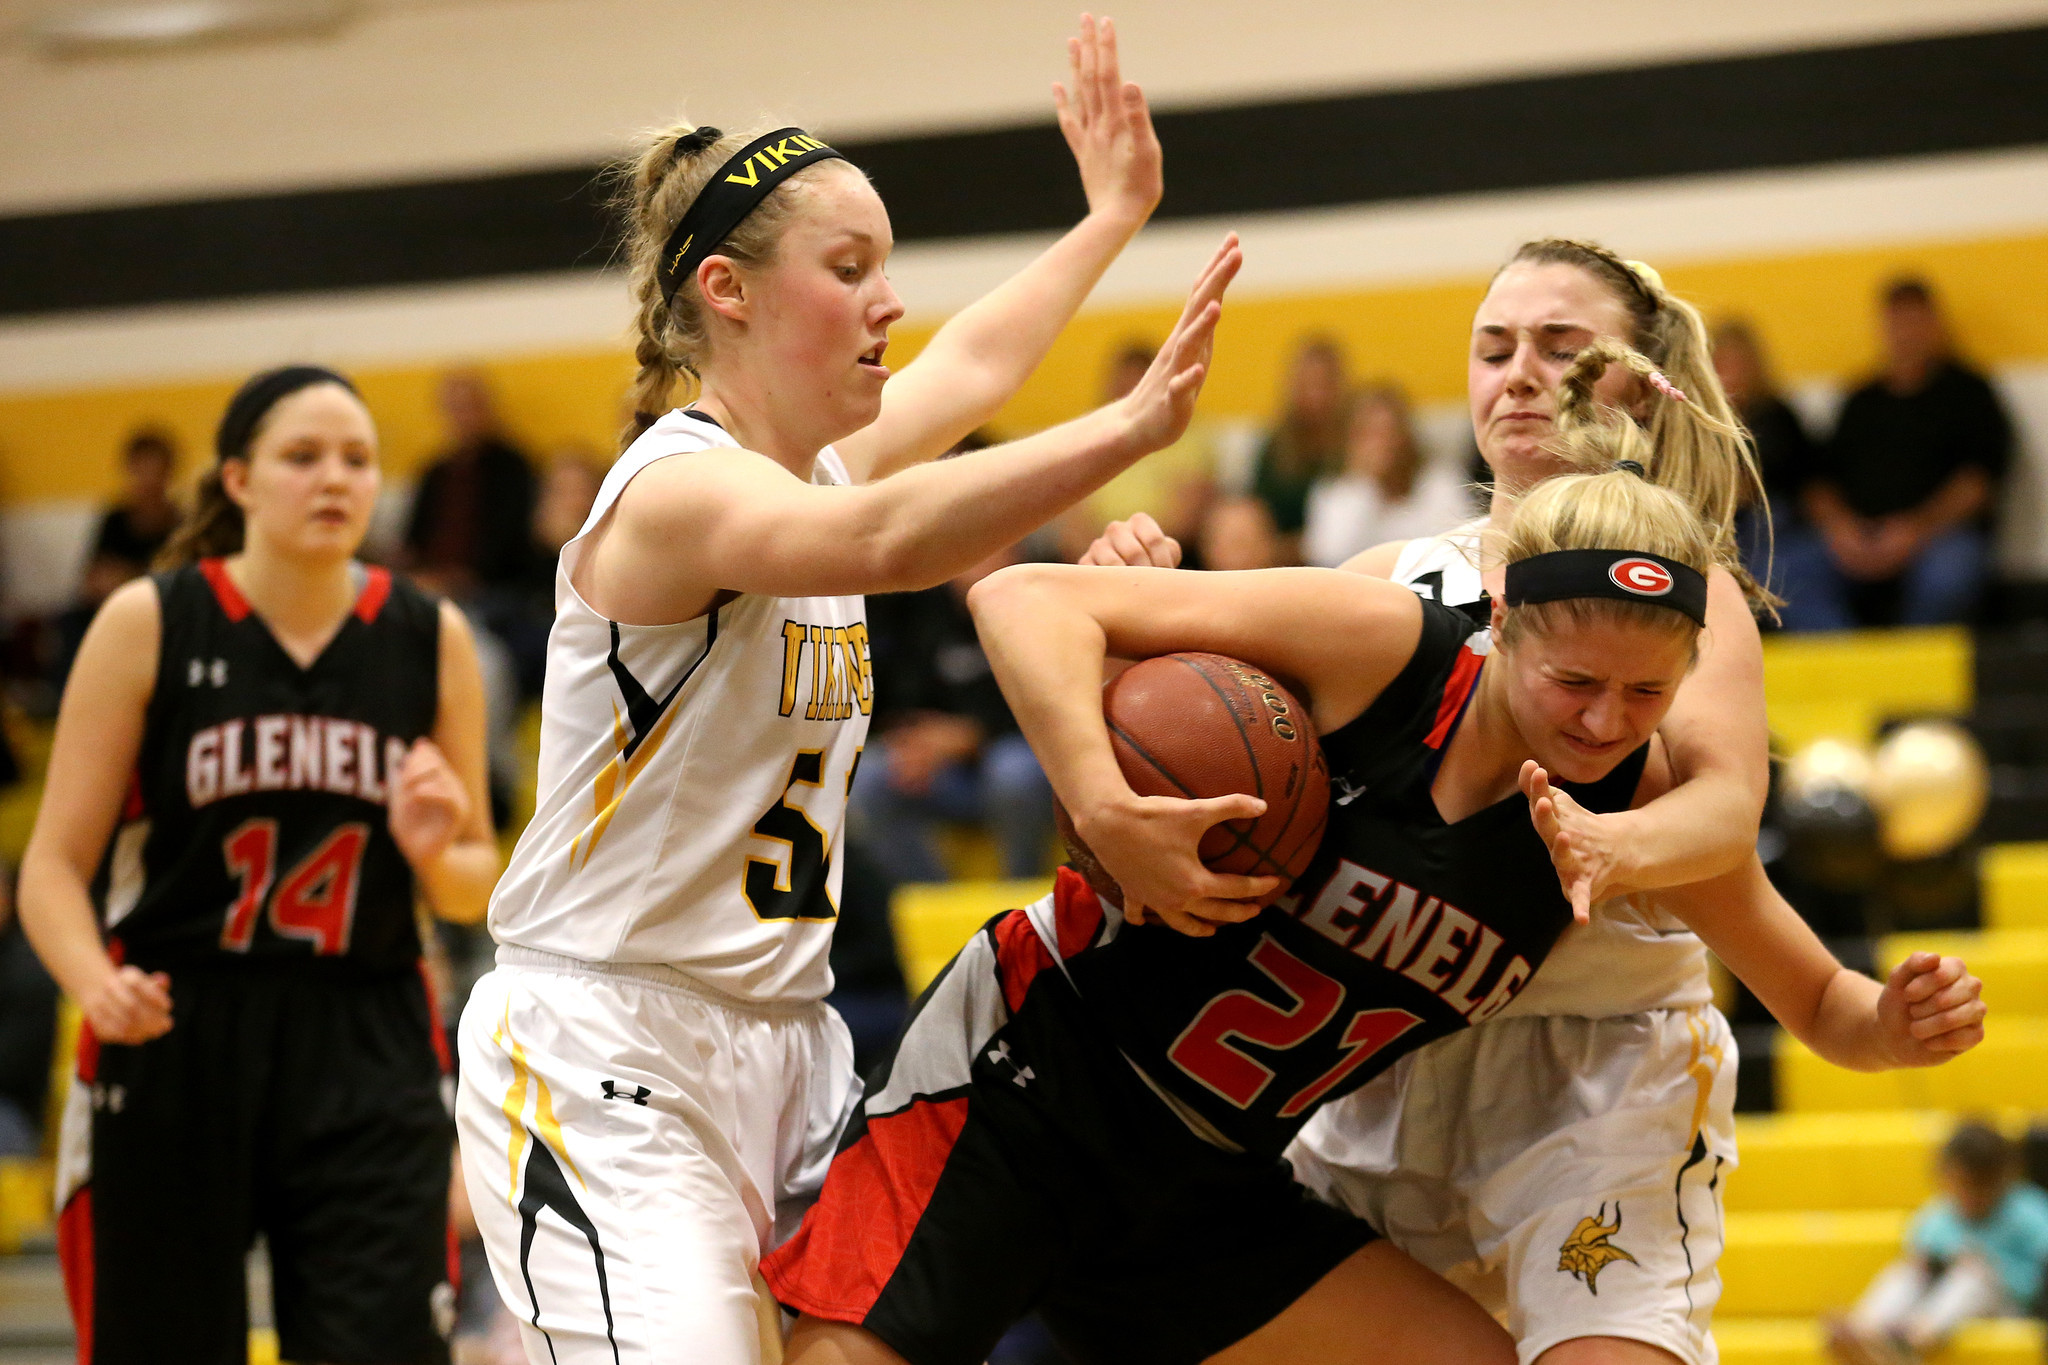 glenelg single catholic girls View pregame, in-game and post-game details from the glenelg country (glenelg, md) vs st john's catholic prep (buckeystown, md) playoff girls basketball game on thu, 2/16/2017.